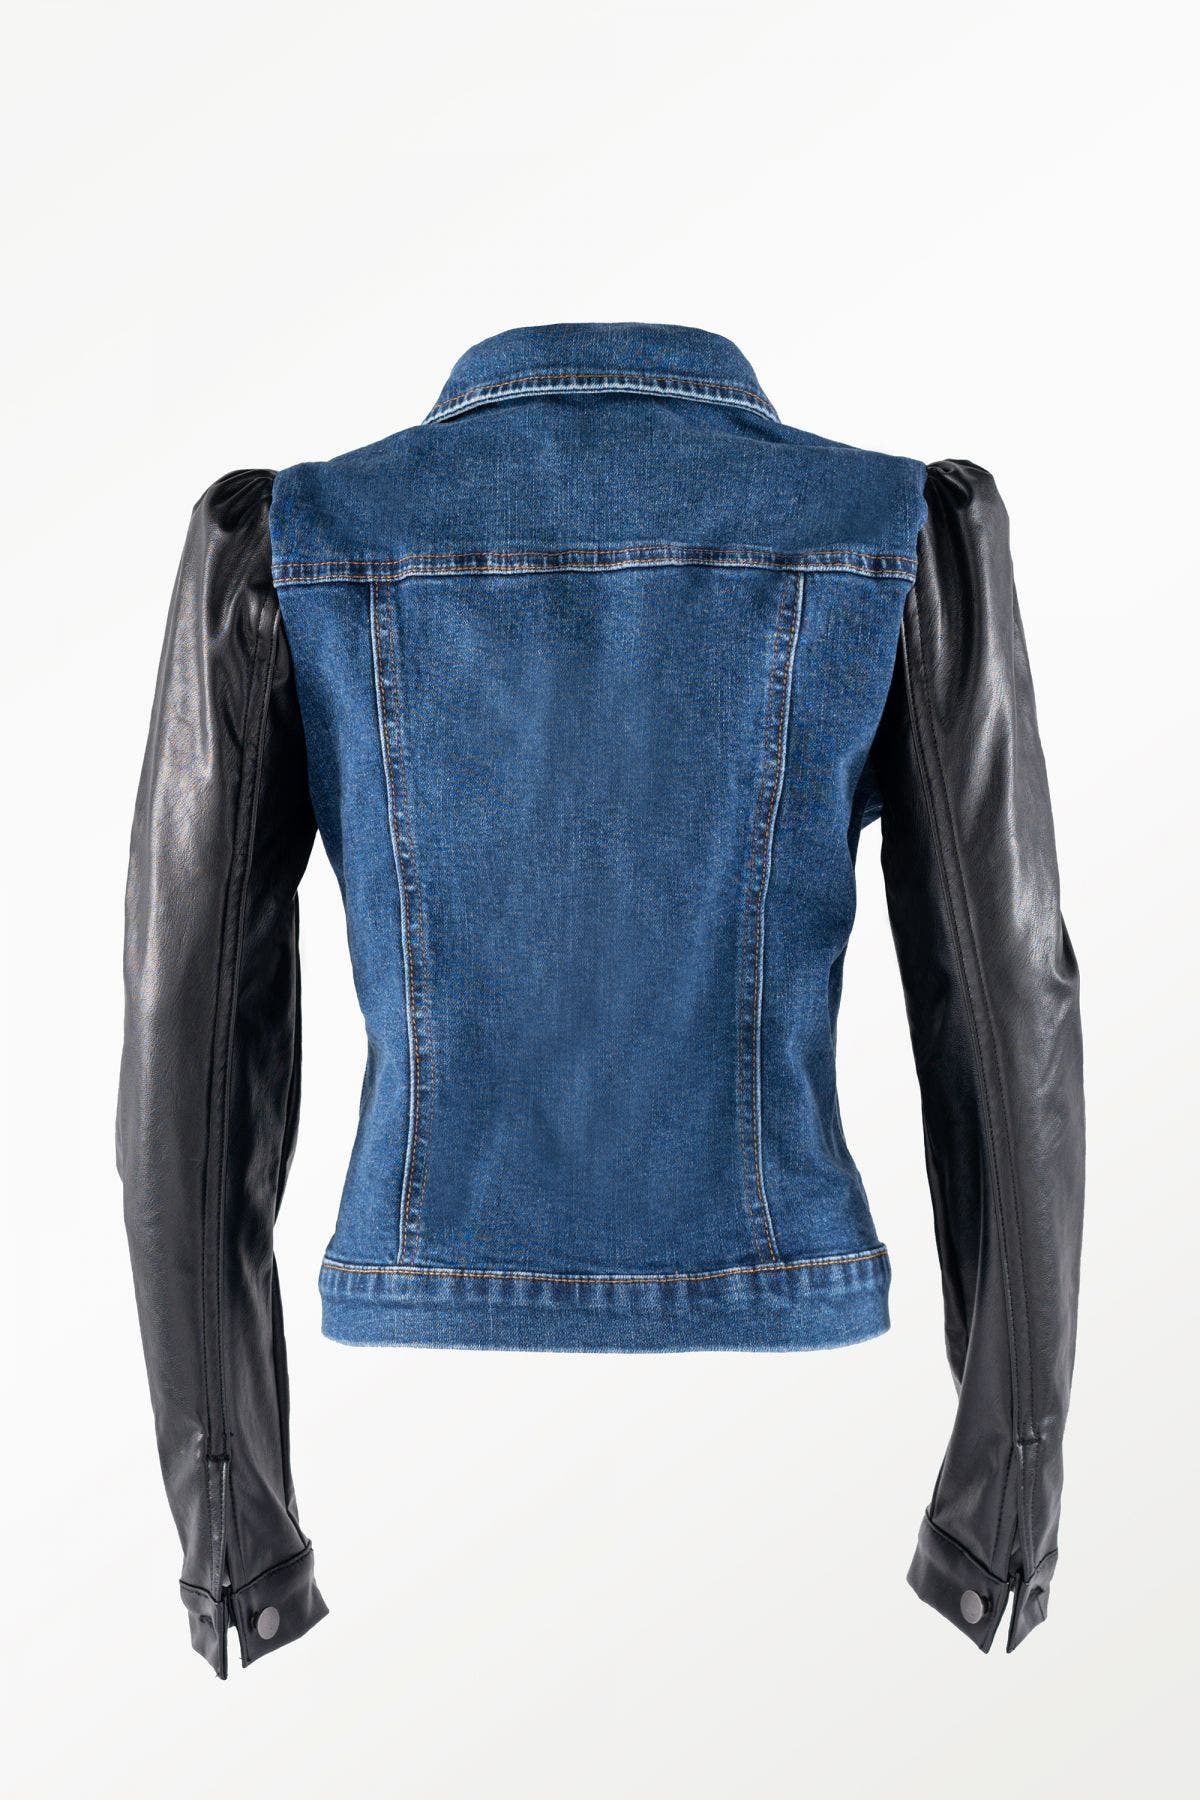 Vegan Leather Mutton Sleeve Denim Jacket